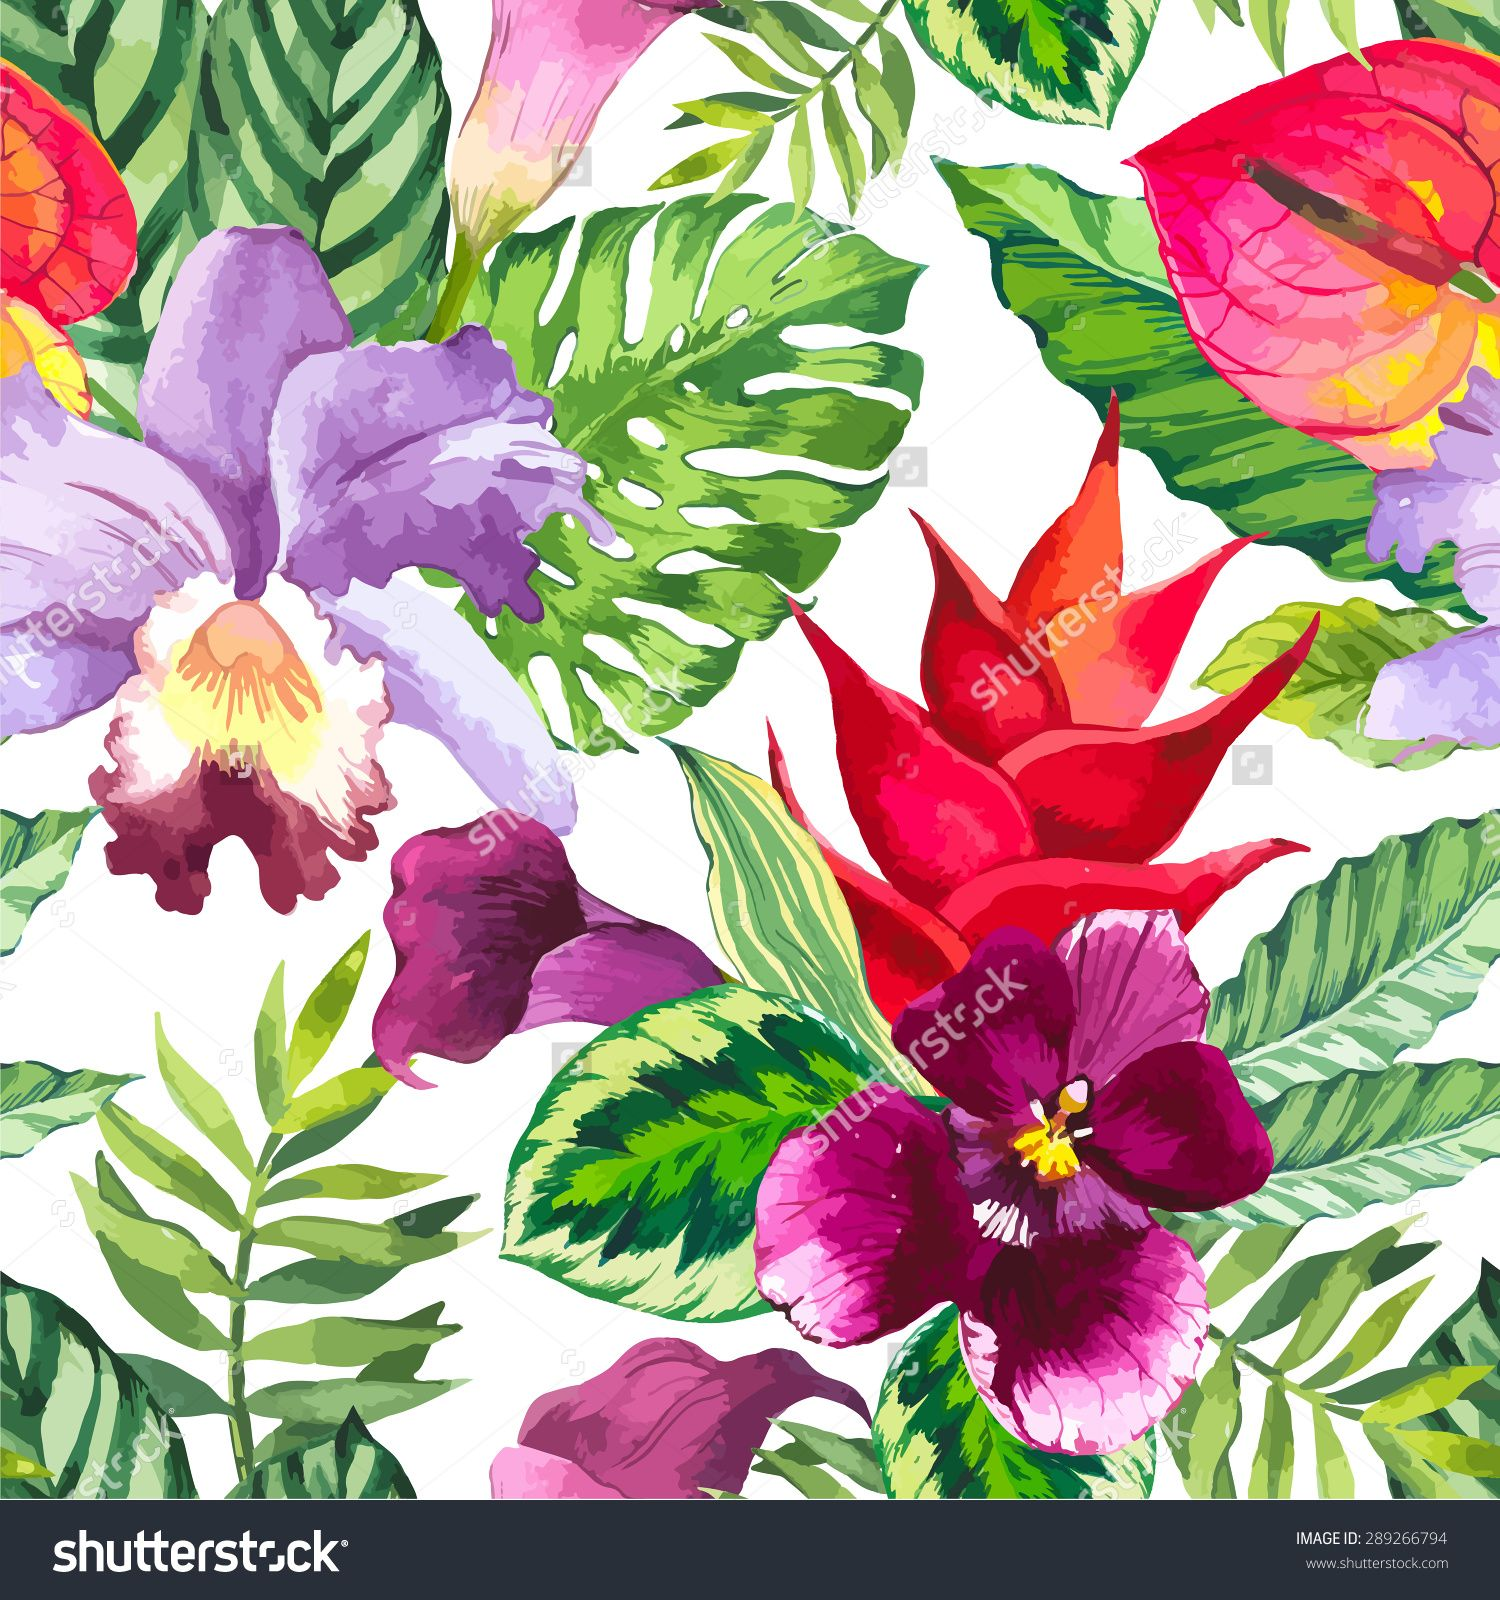 Vector Illustration With Watercolor Flowers Beautiful Seamless Background With Tropical